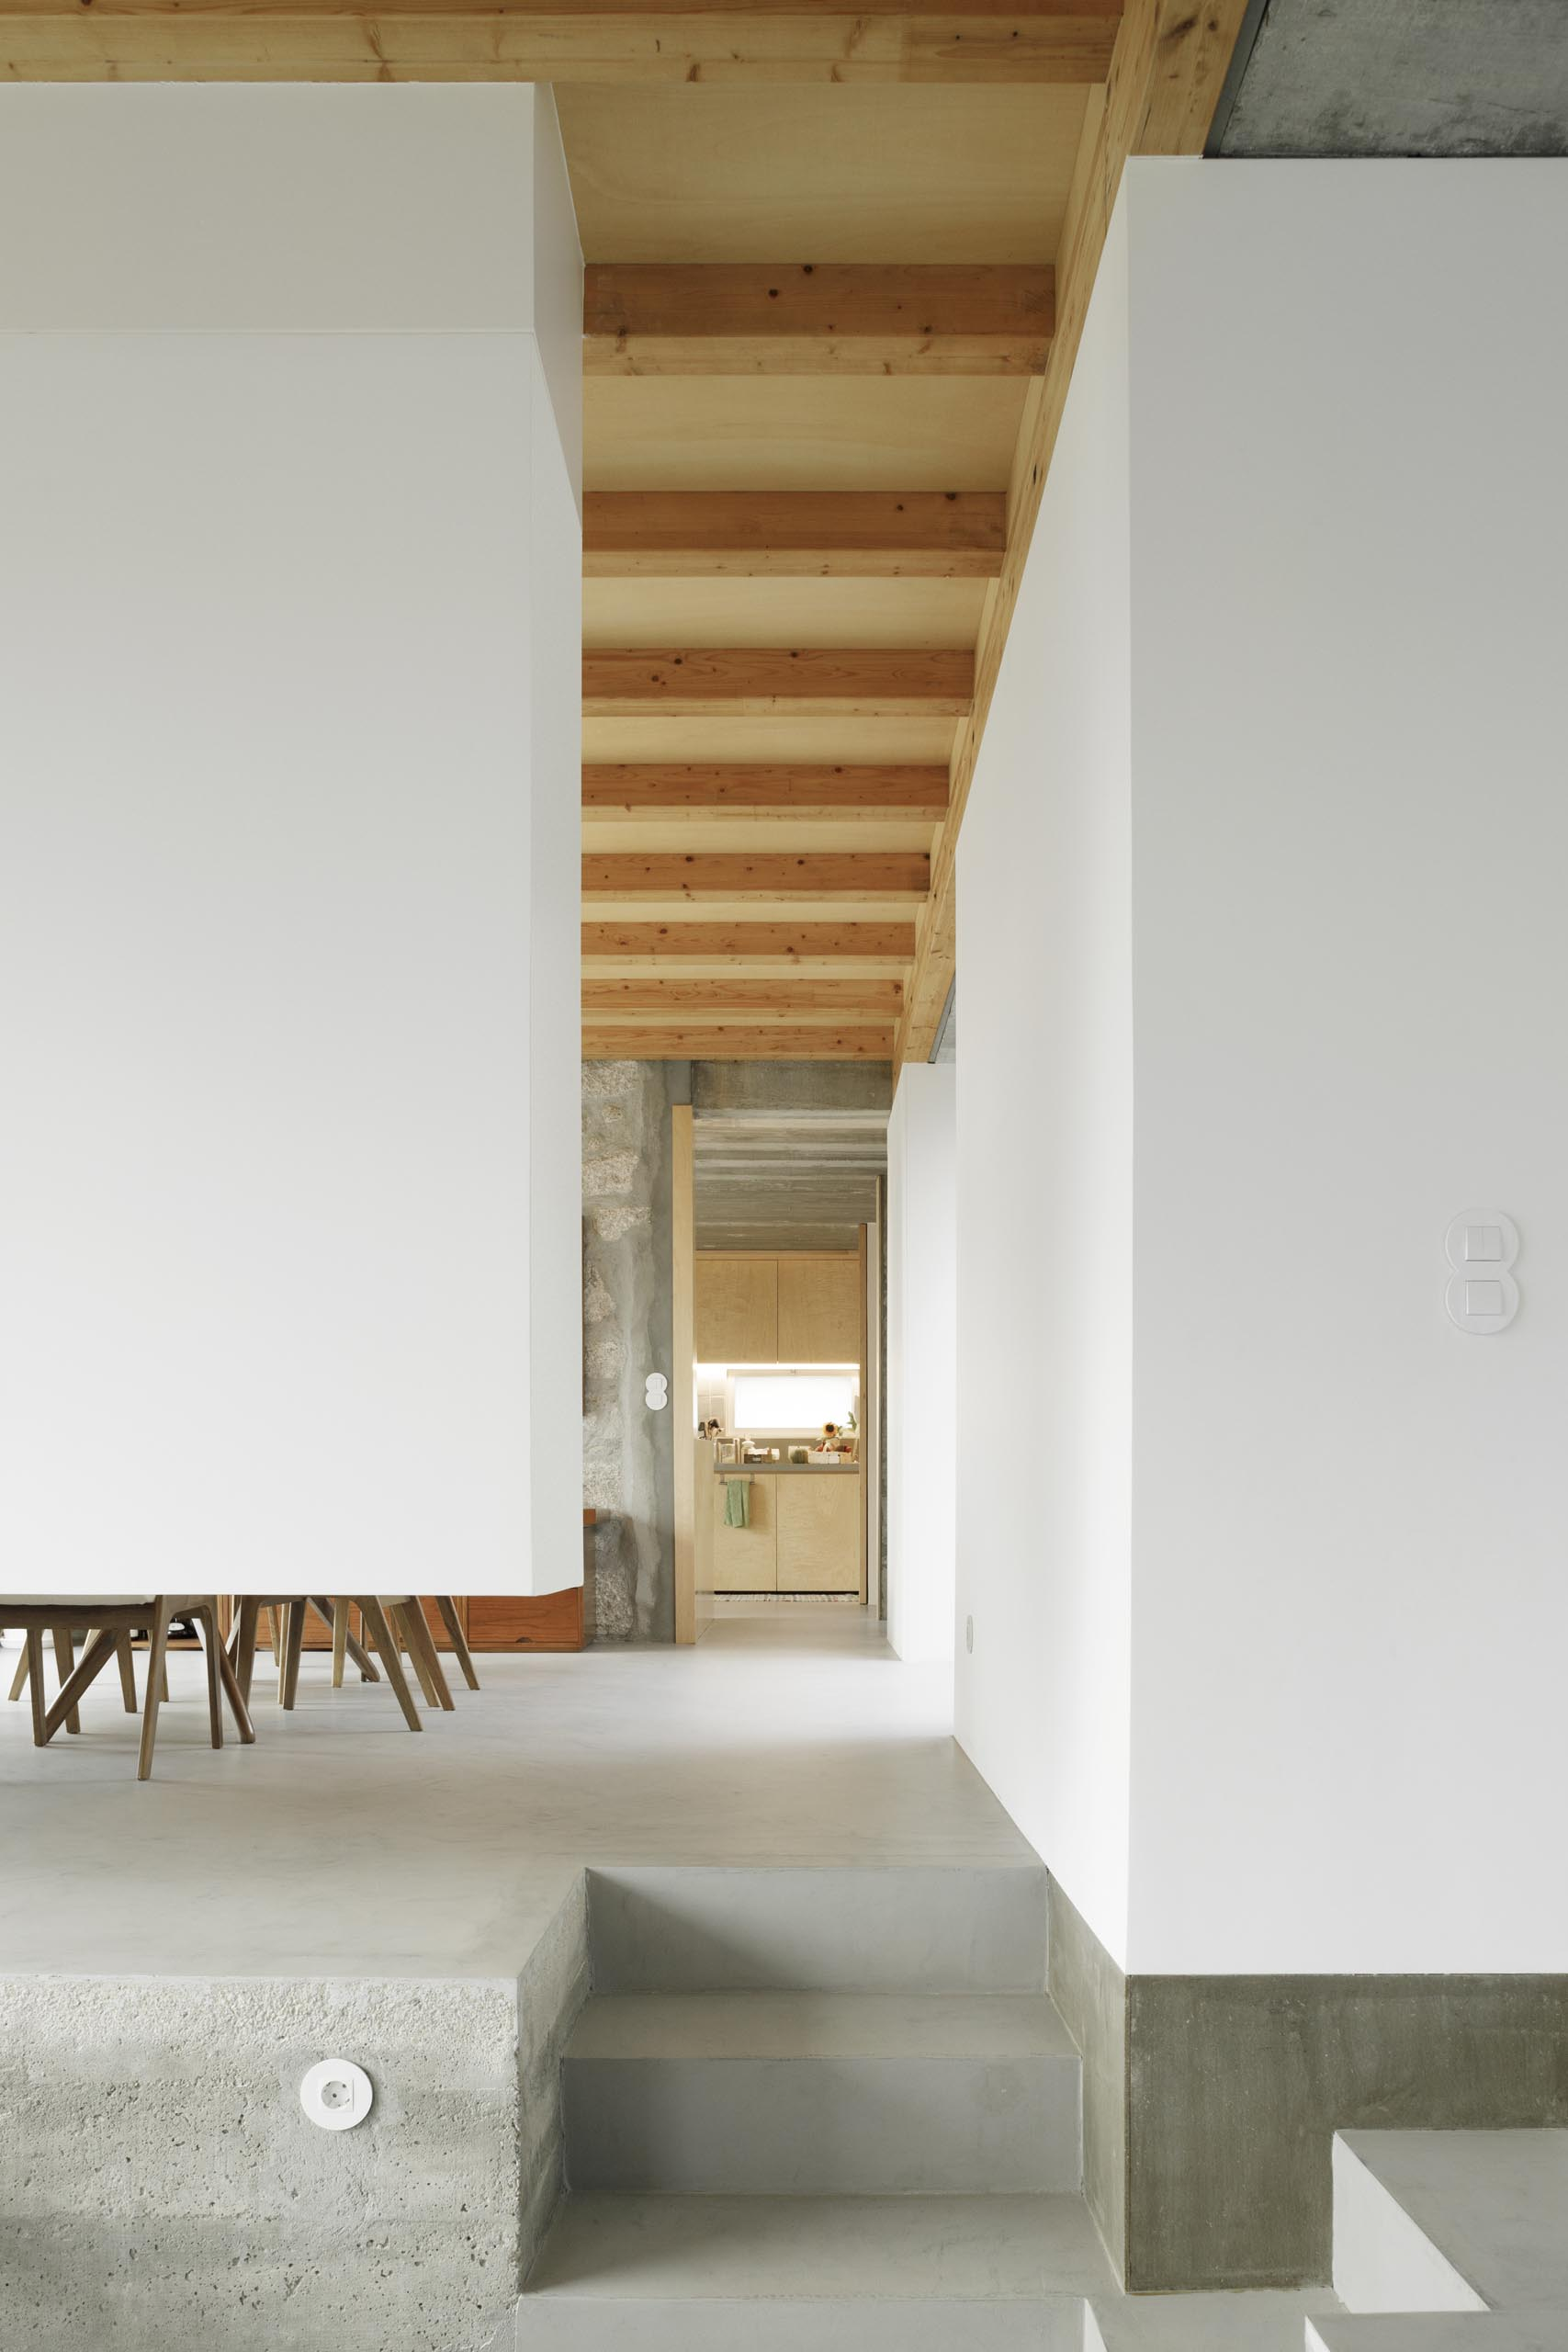 A modern home with concrete floors, white walls, and a wood ceiling.